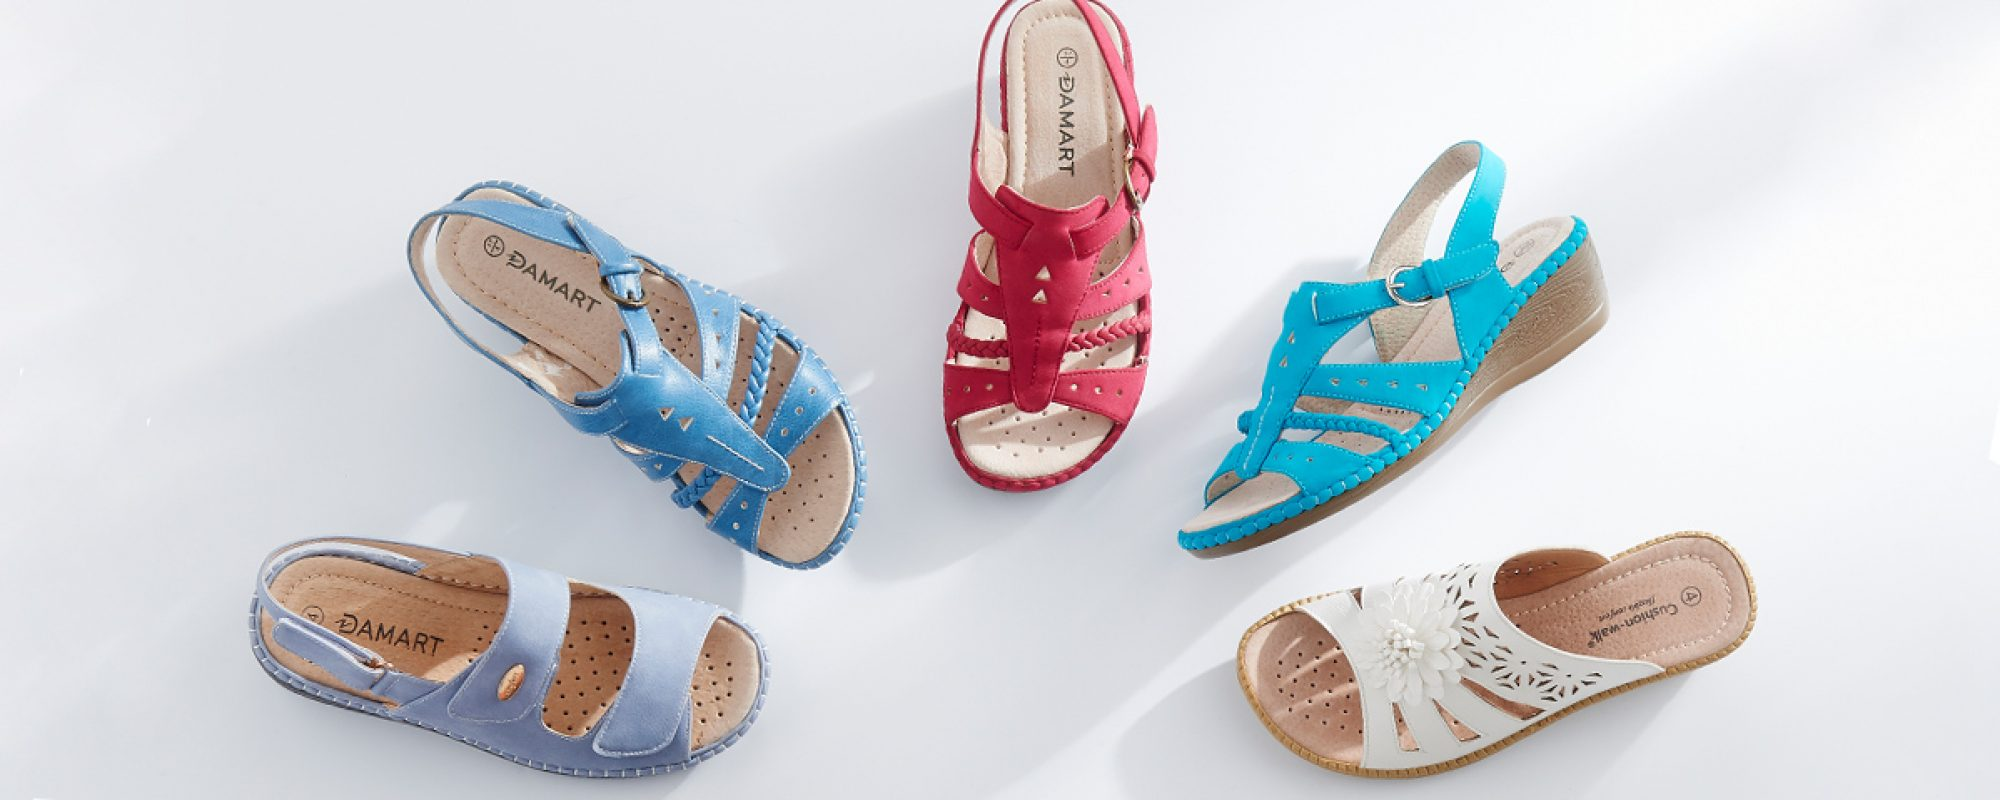 Our Best-selling Sandals | Damart Style Diaries